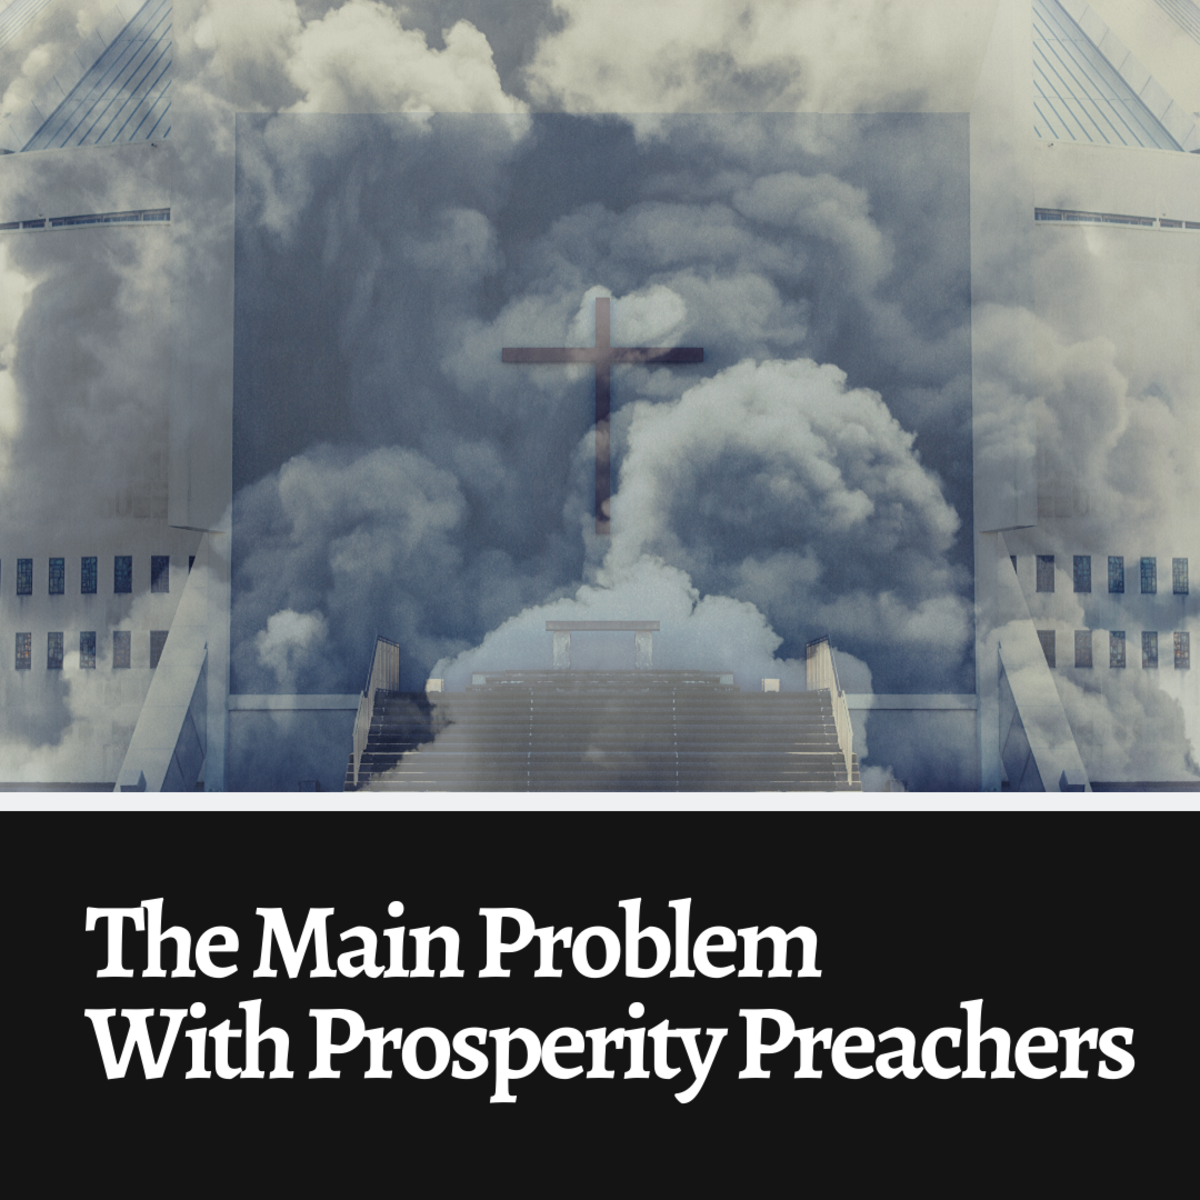 The Main Problem of Partnering With Prosperity Preachers